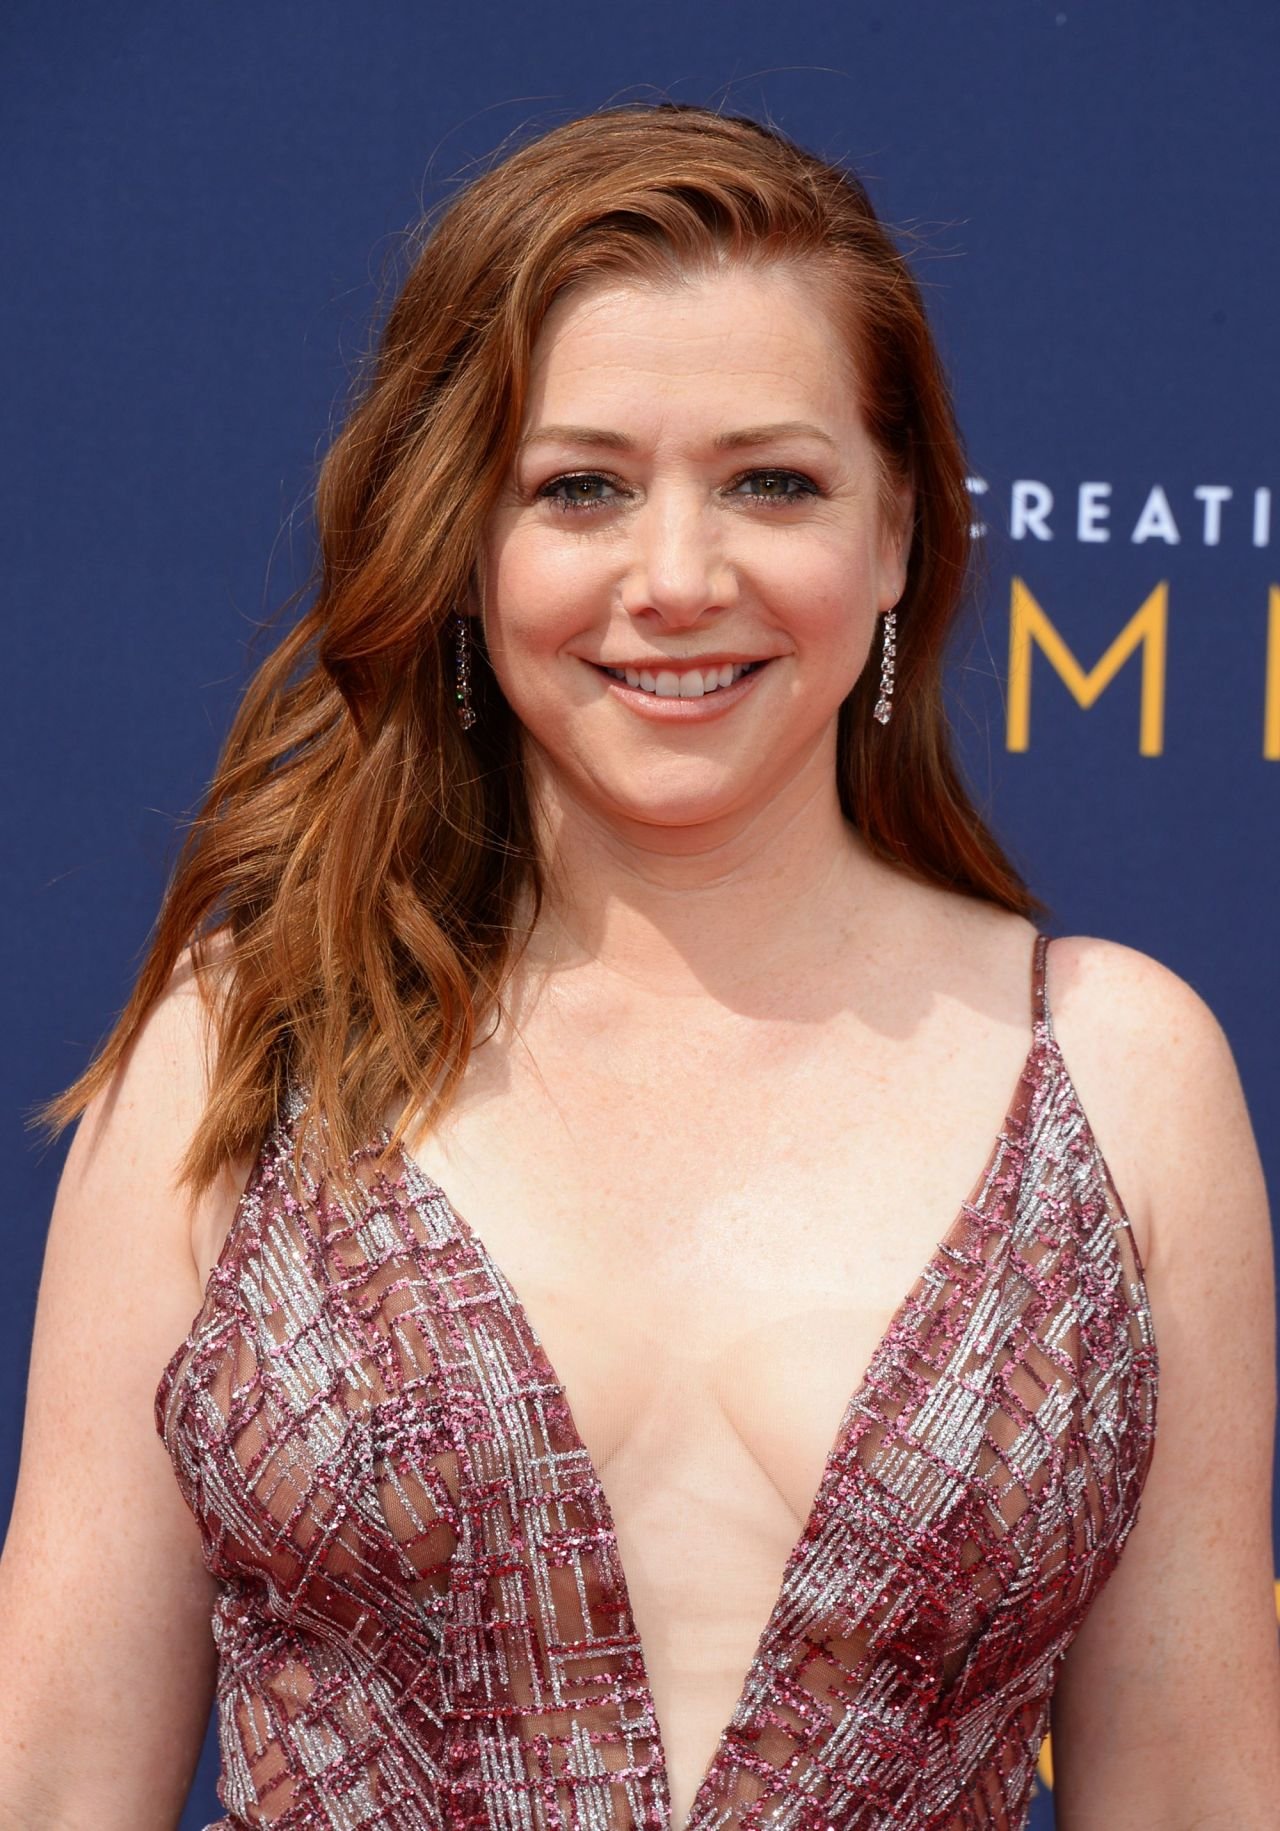 Images Alyson Hannigan nude (77 photos), Topless, Leaked, Selfie, butt 2020